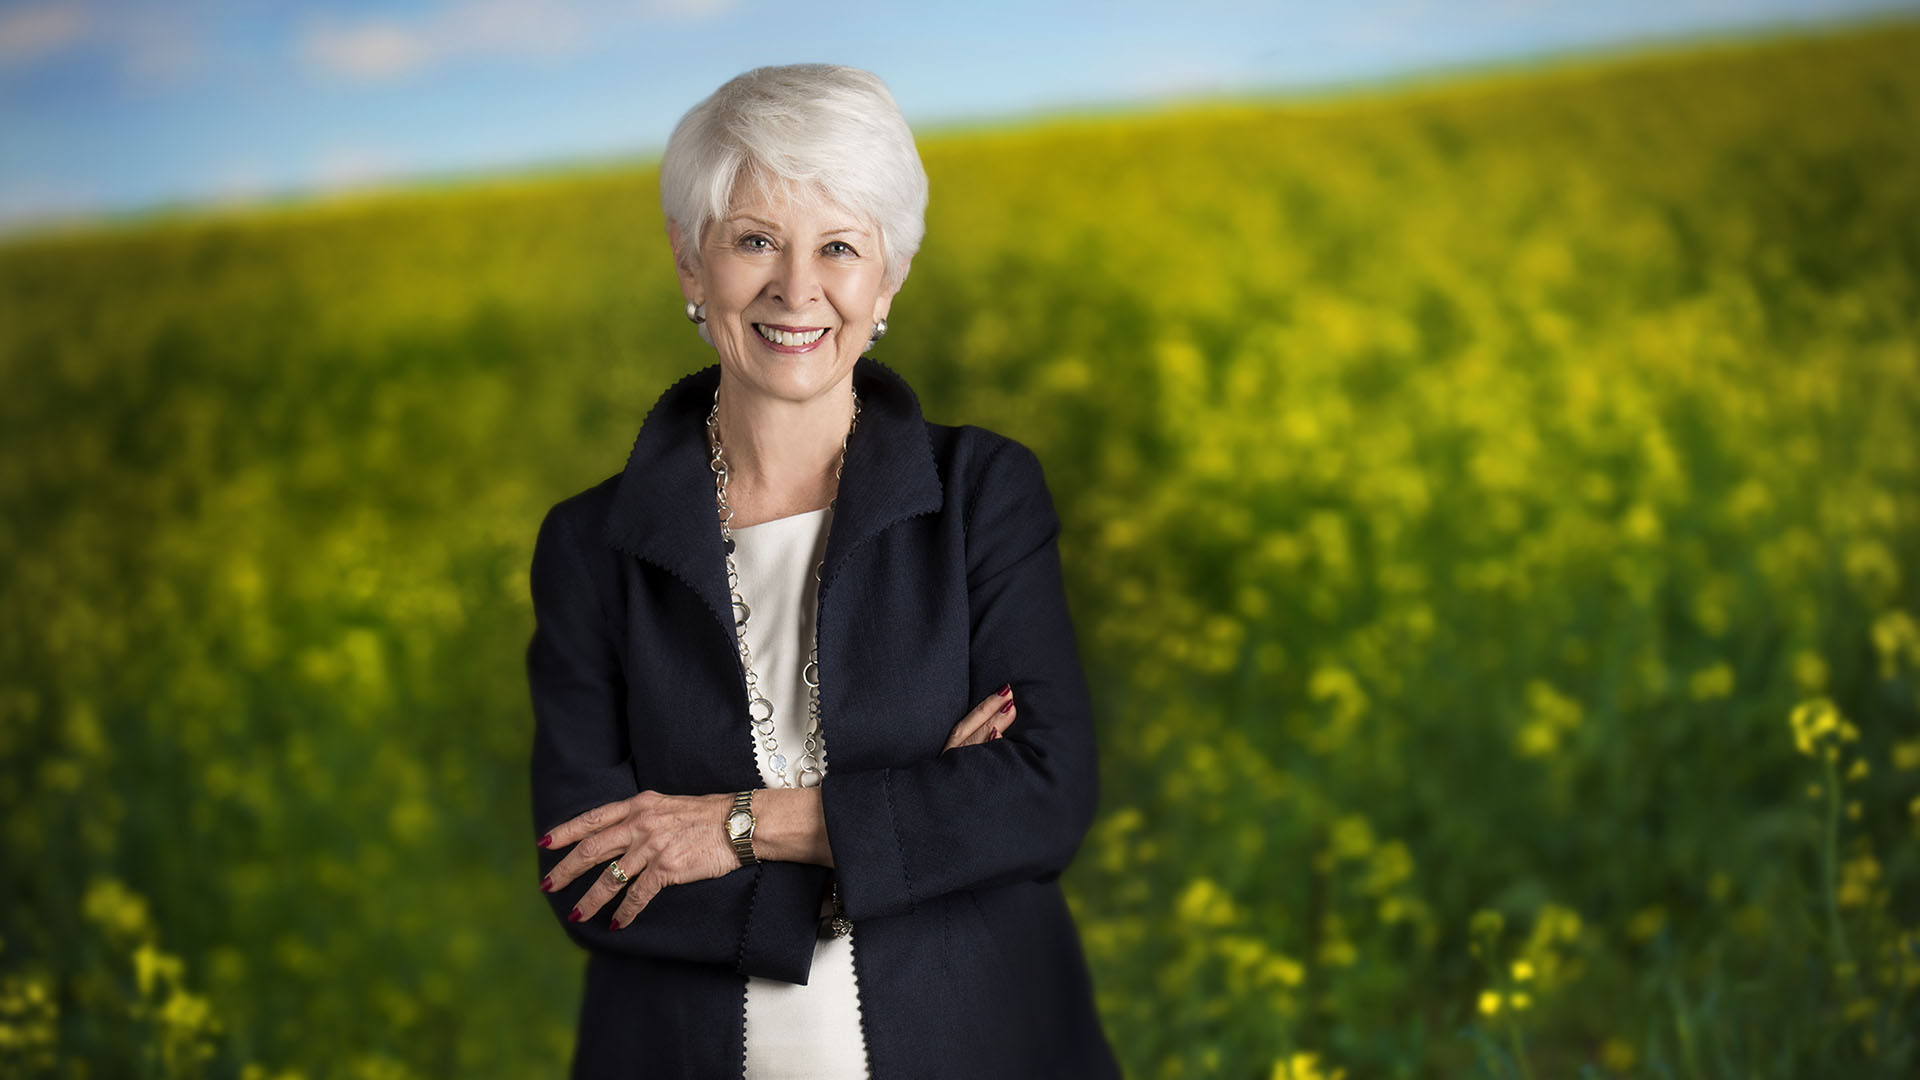 Alberta Order of Excellence member Bonnie DuPont